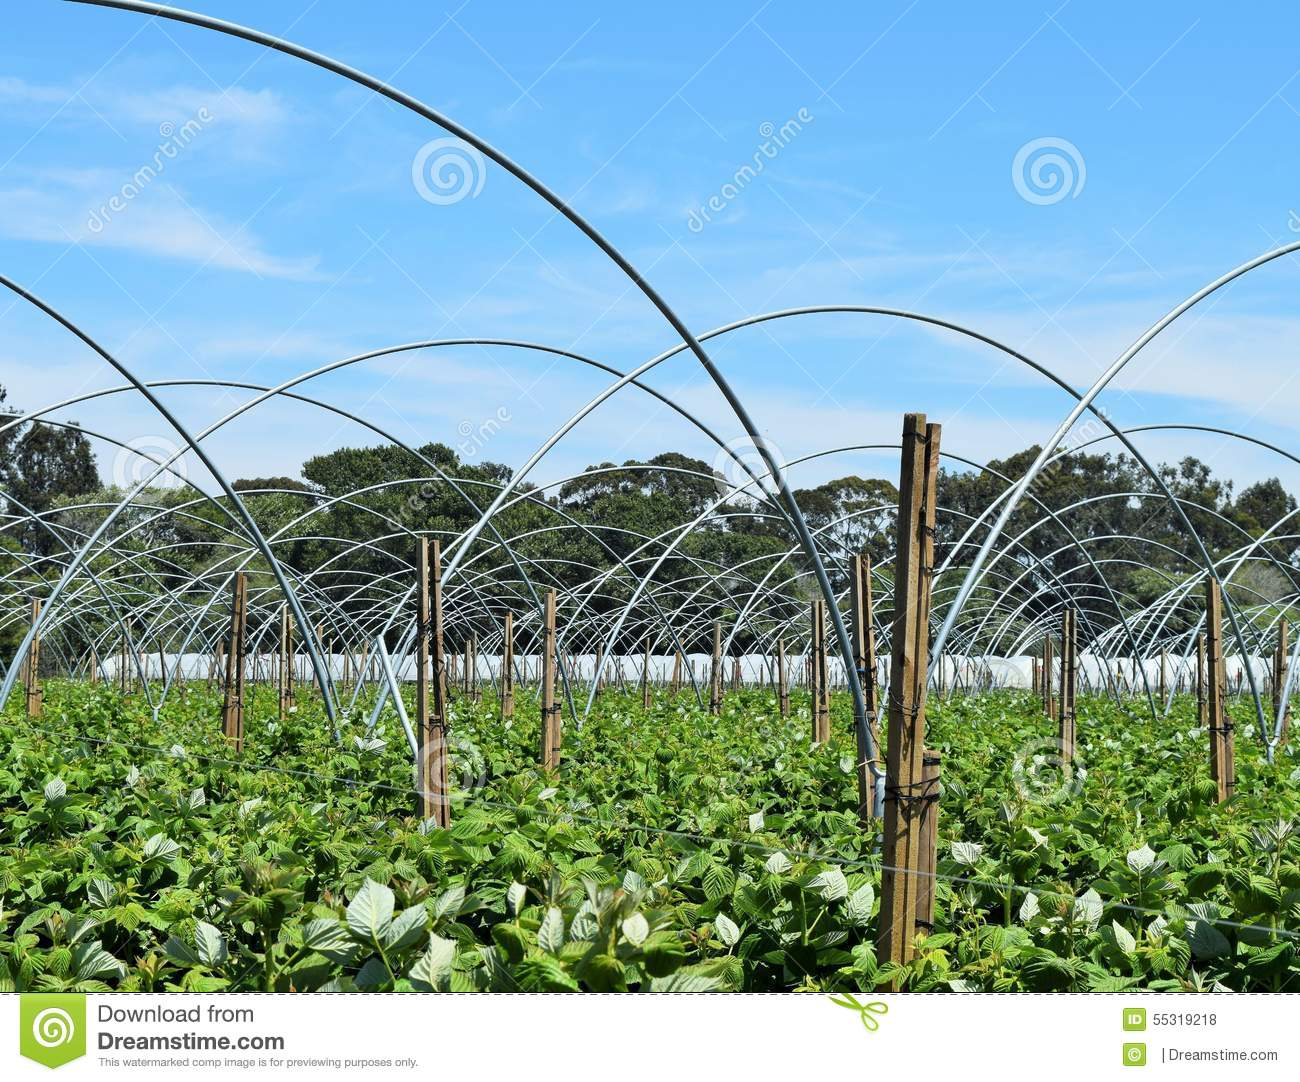 Architectural Patterns Of Greenhouse Arches Stock Photo - Image of